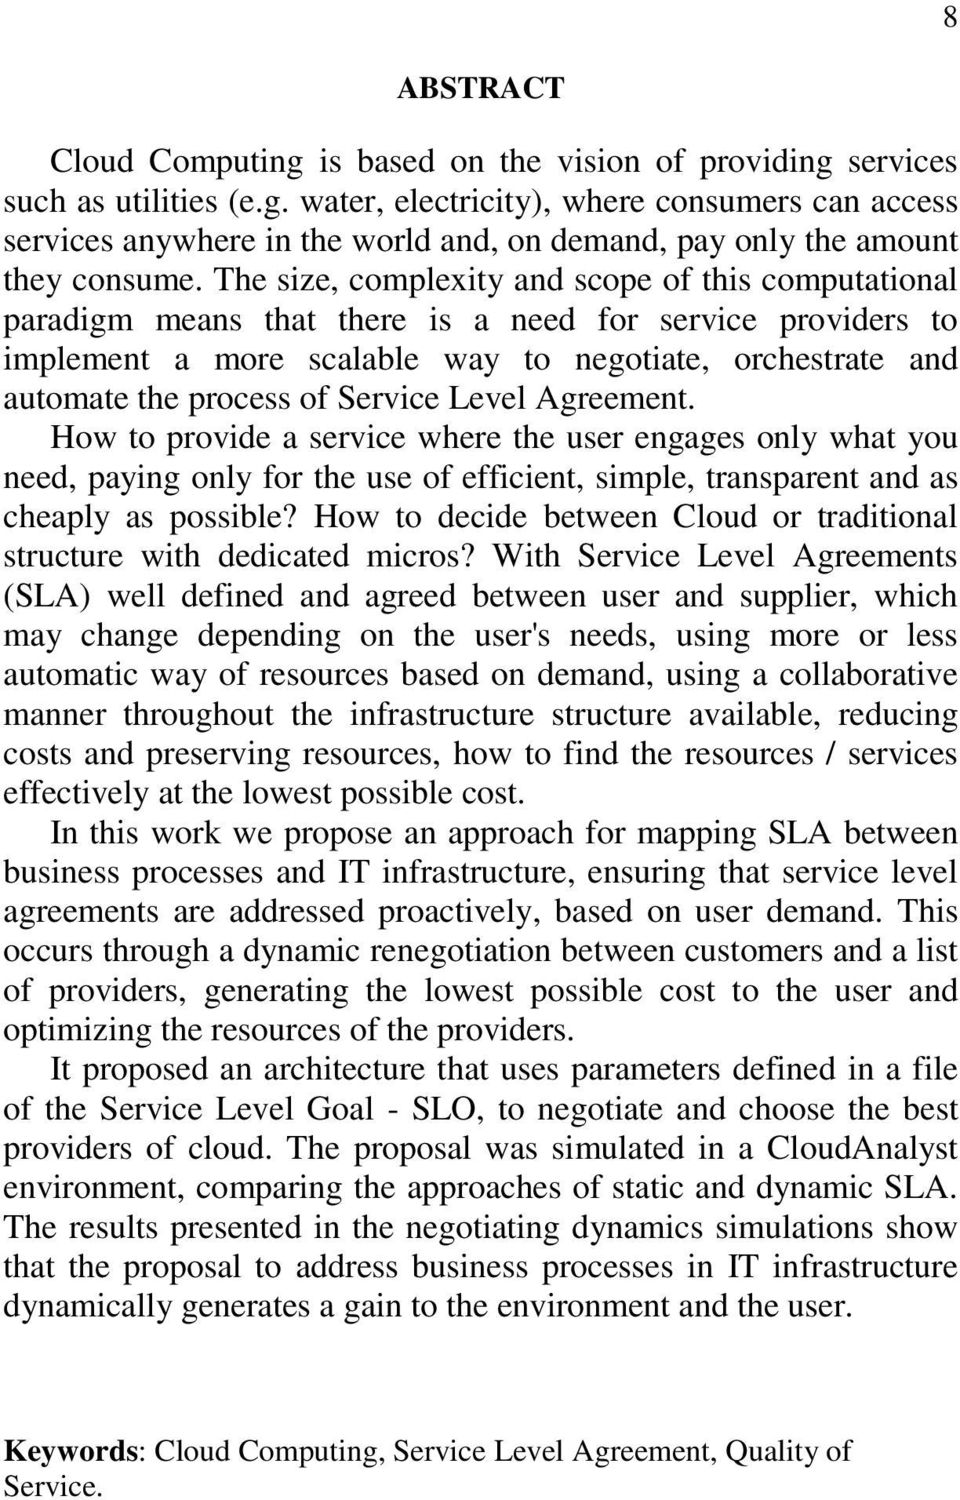 Service Level Agreement. How to provide a service where the user engages only what you need, paying only for the use of efficient, simple, transparent and as cheaply as possible?